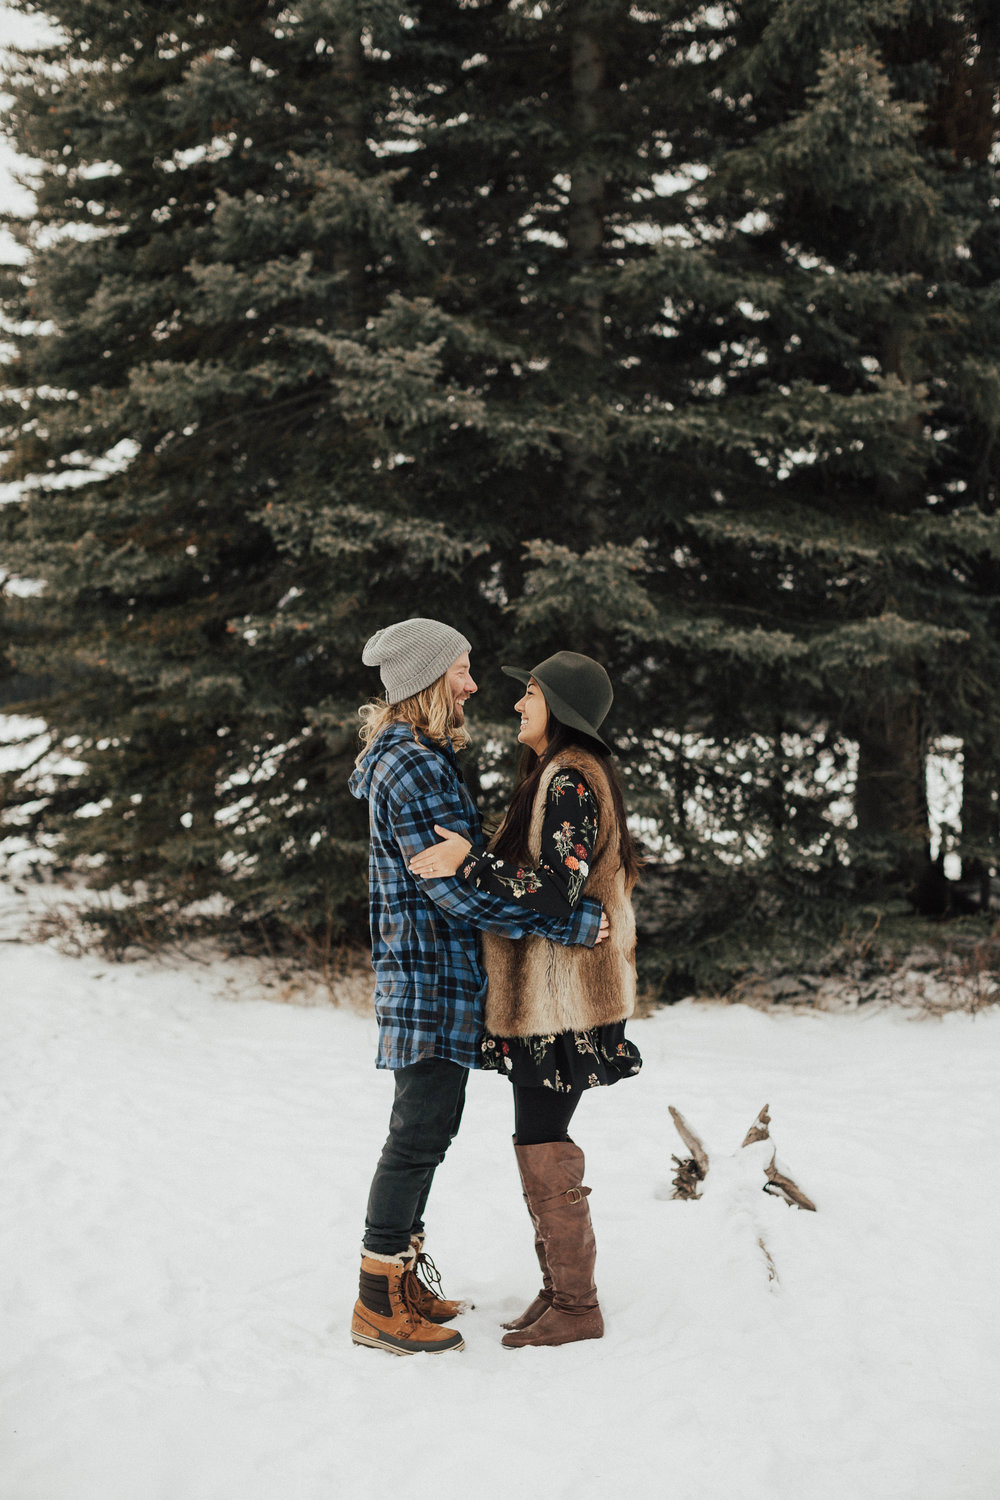 Banff Engagement Photographer - Winter Mountain Adventure Engagement Session - Michelle Larmand Photography-025